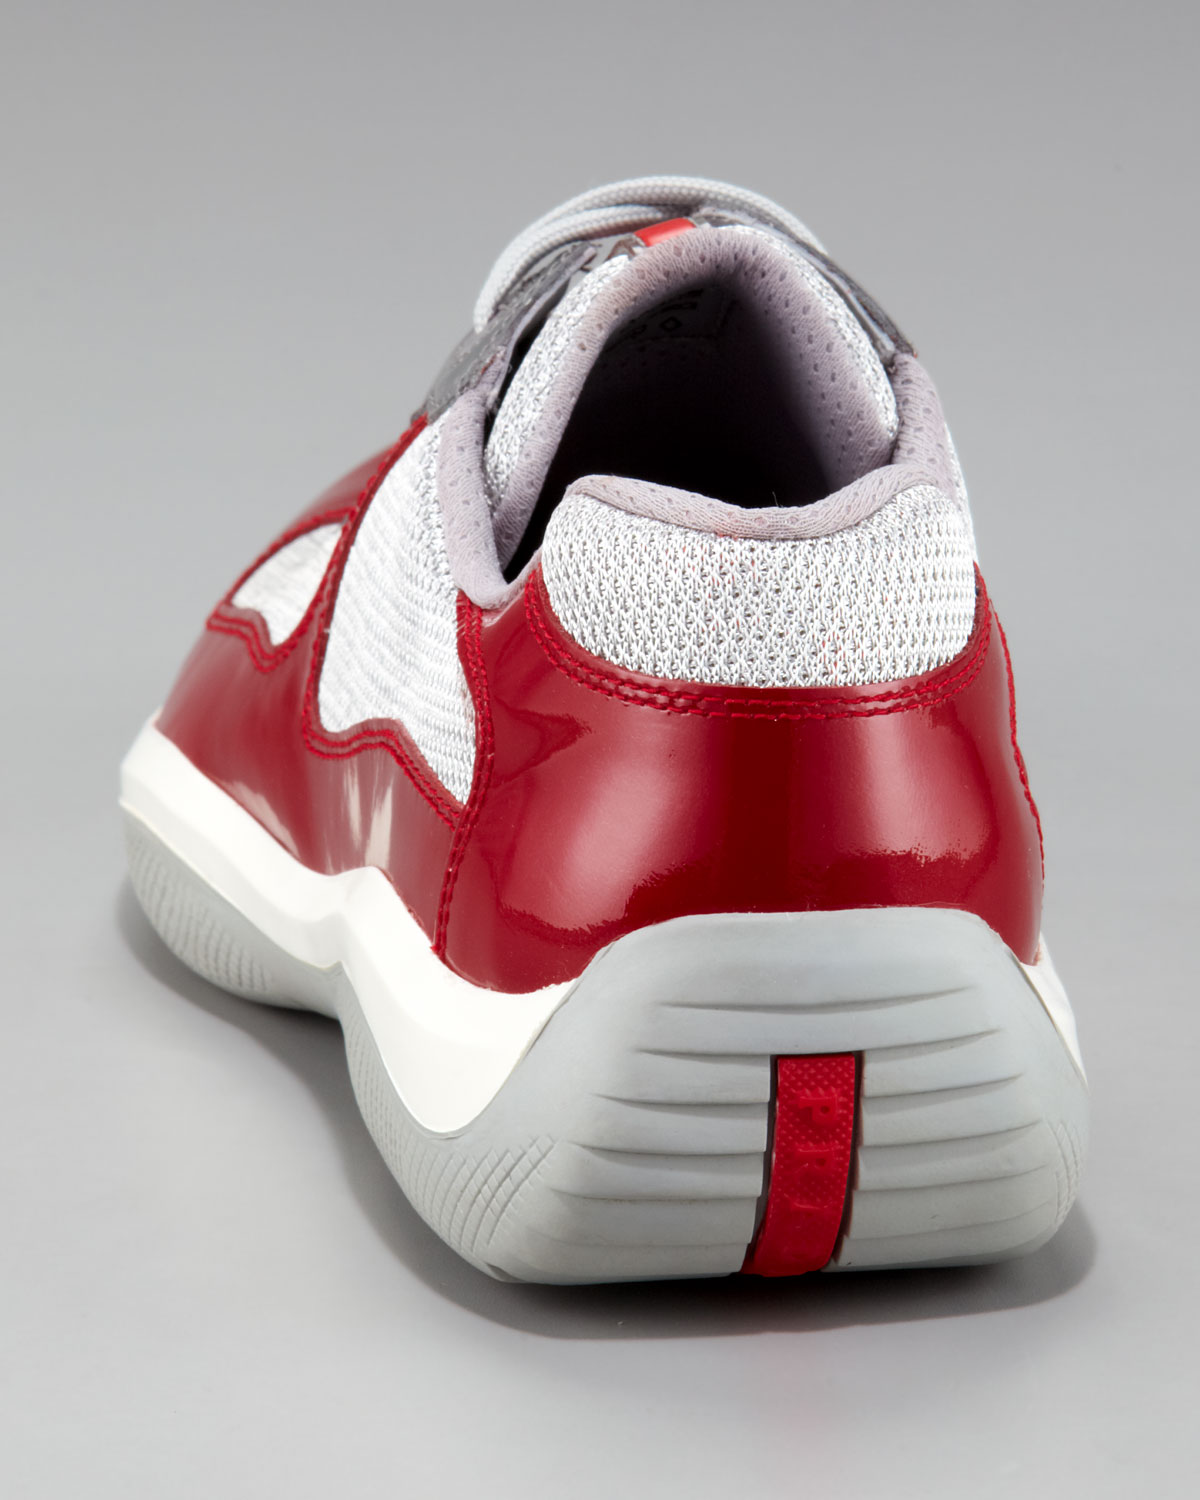 Prada Patent Leather Sneaker In Red For Men Lyst